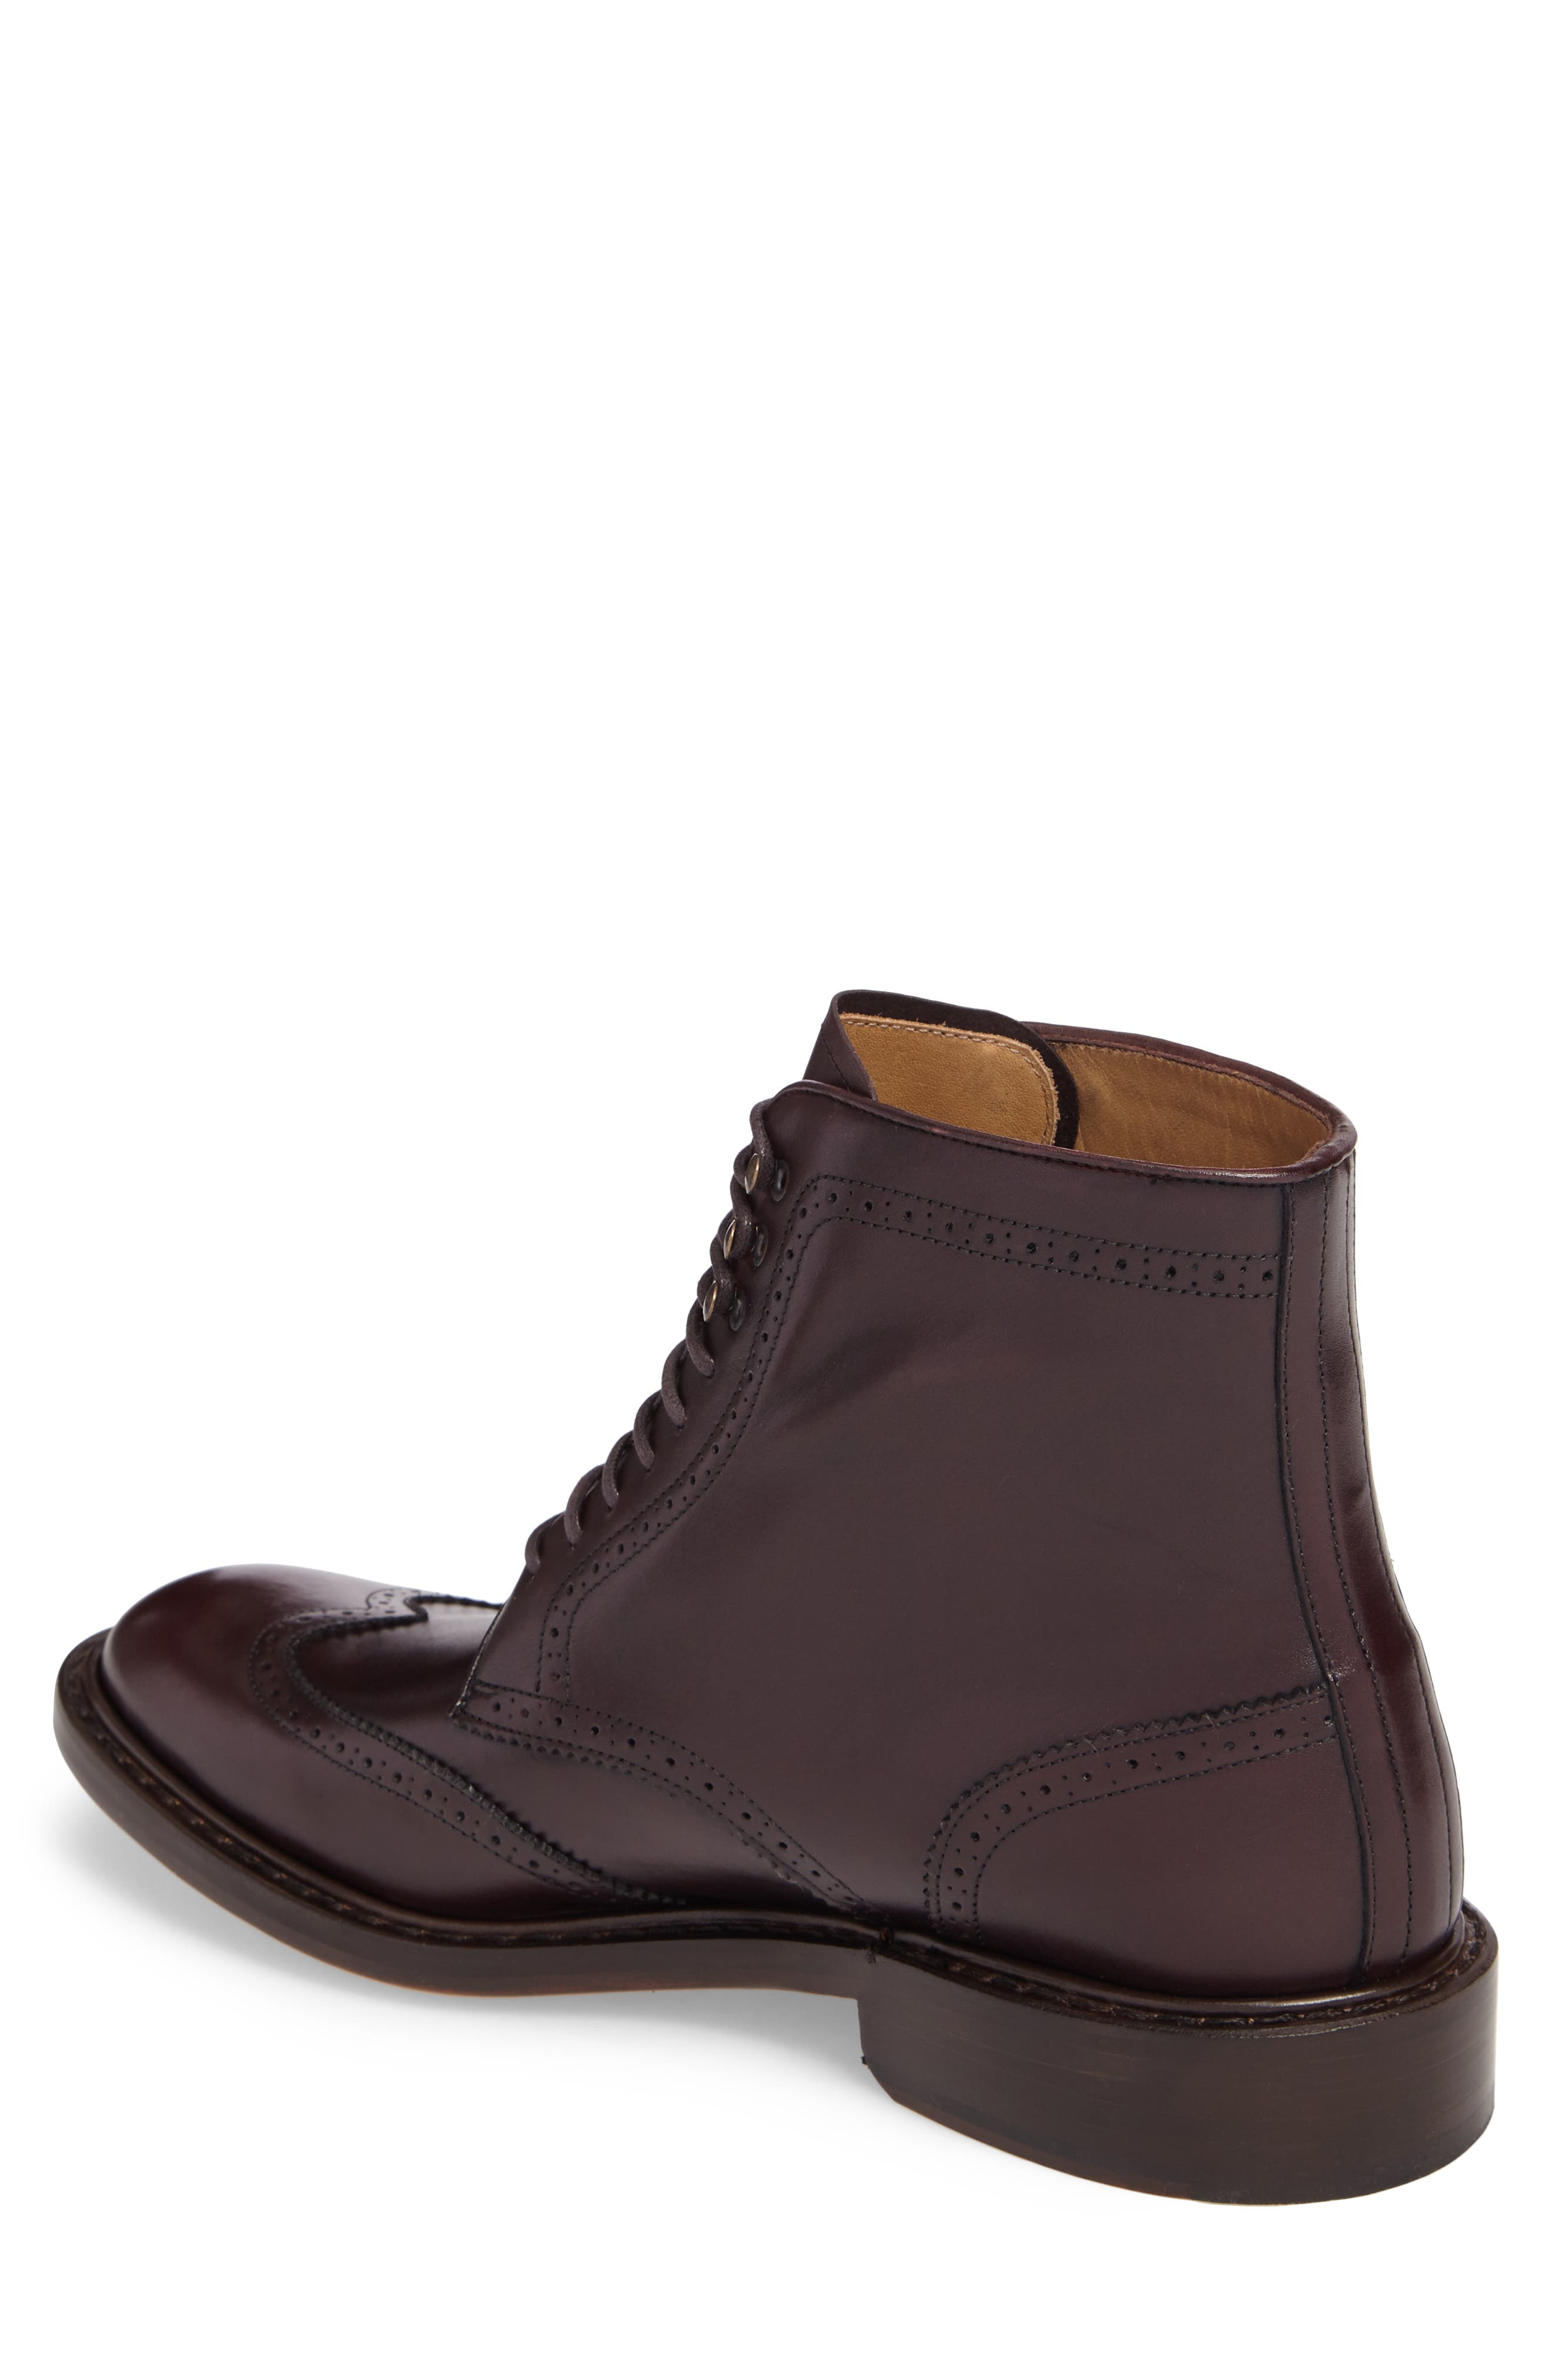 Carter Wingtip Boot,                             Alternate thumbnail 2, color,                             BURGUNDY LEATHER